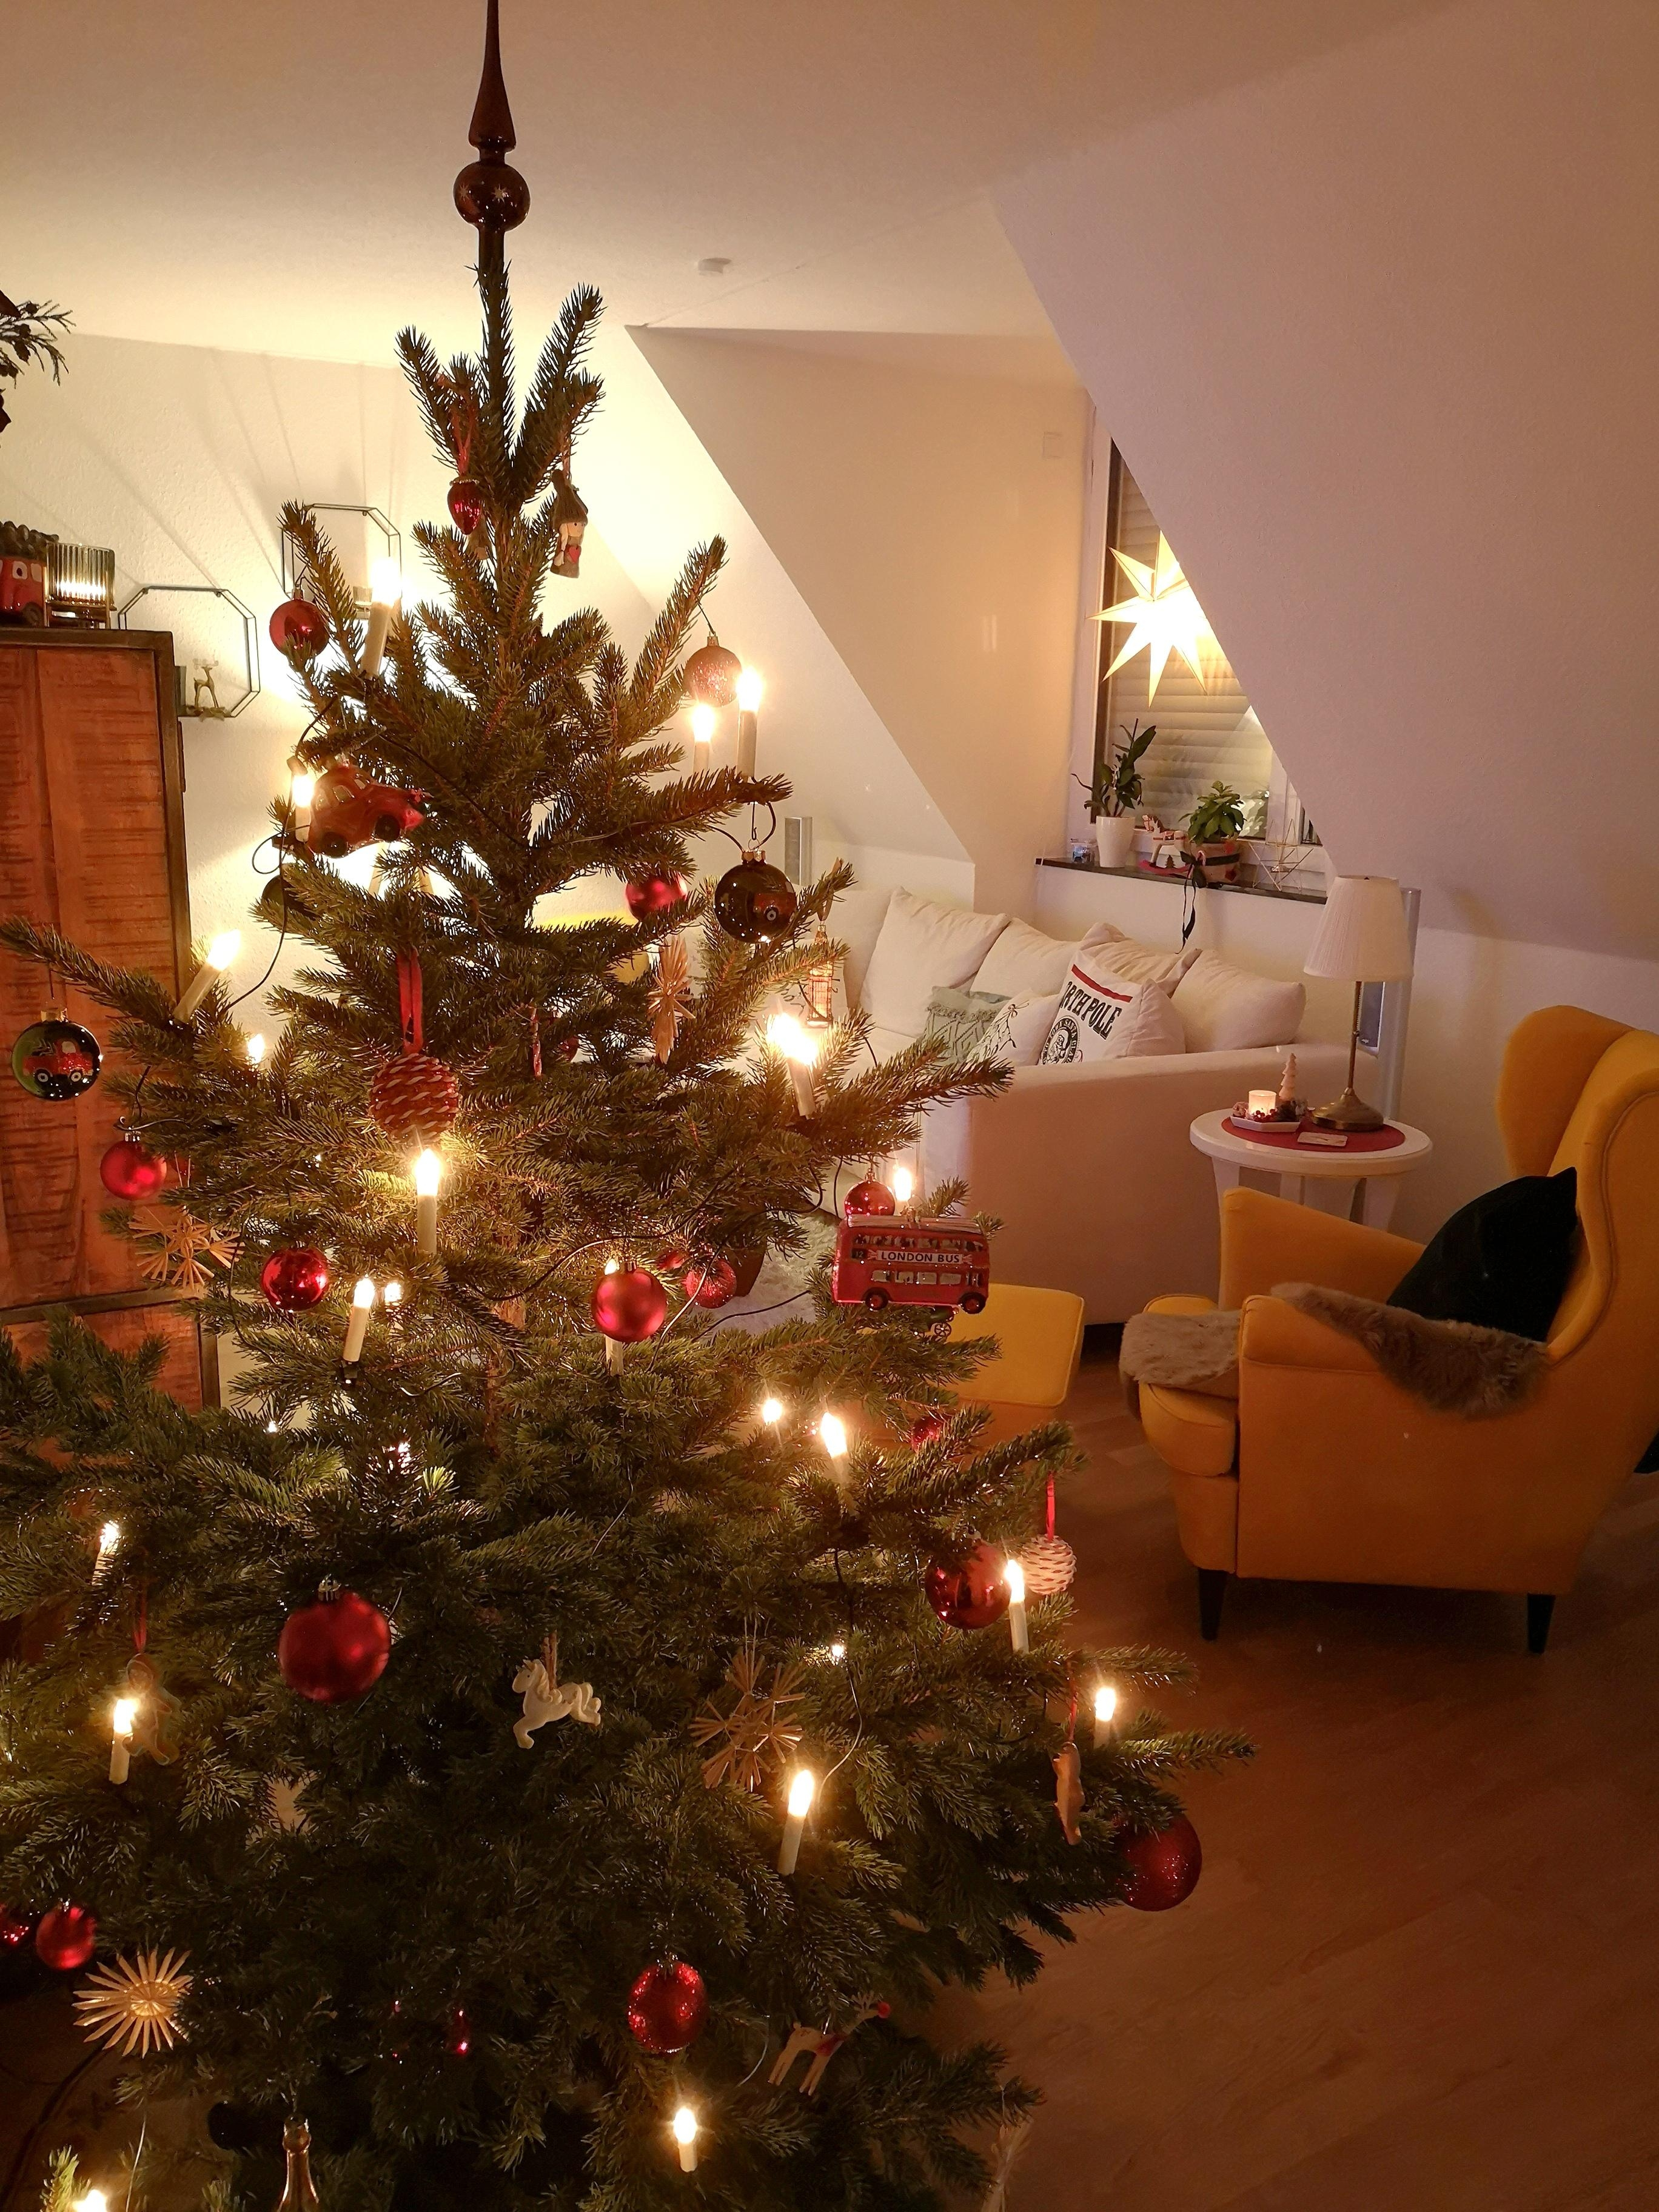 A little #throwback to last #christmas #christbaum #weihnachten #cozytime #weihnachtsdeko